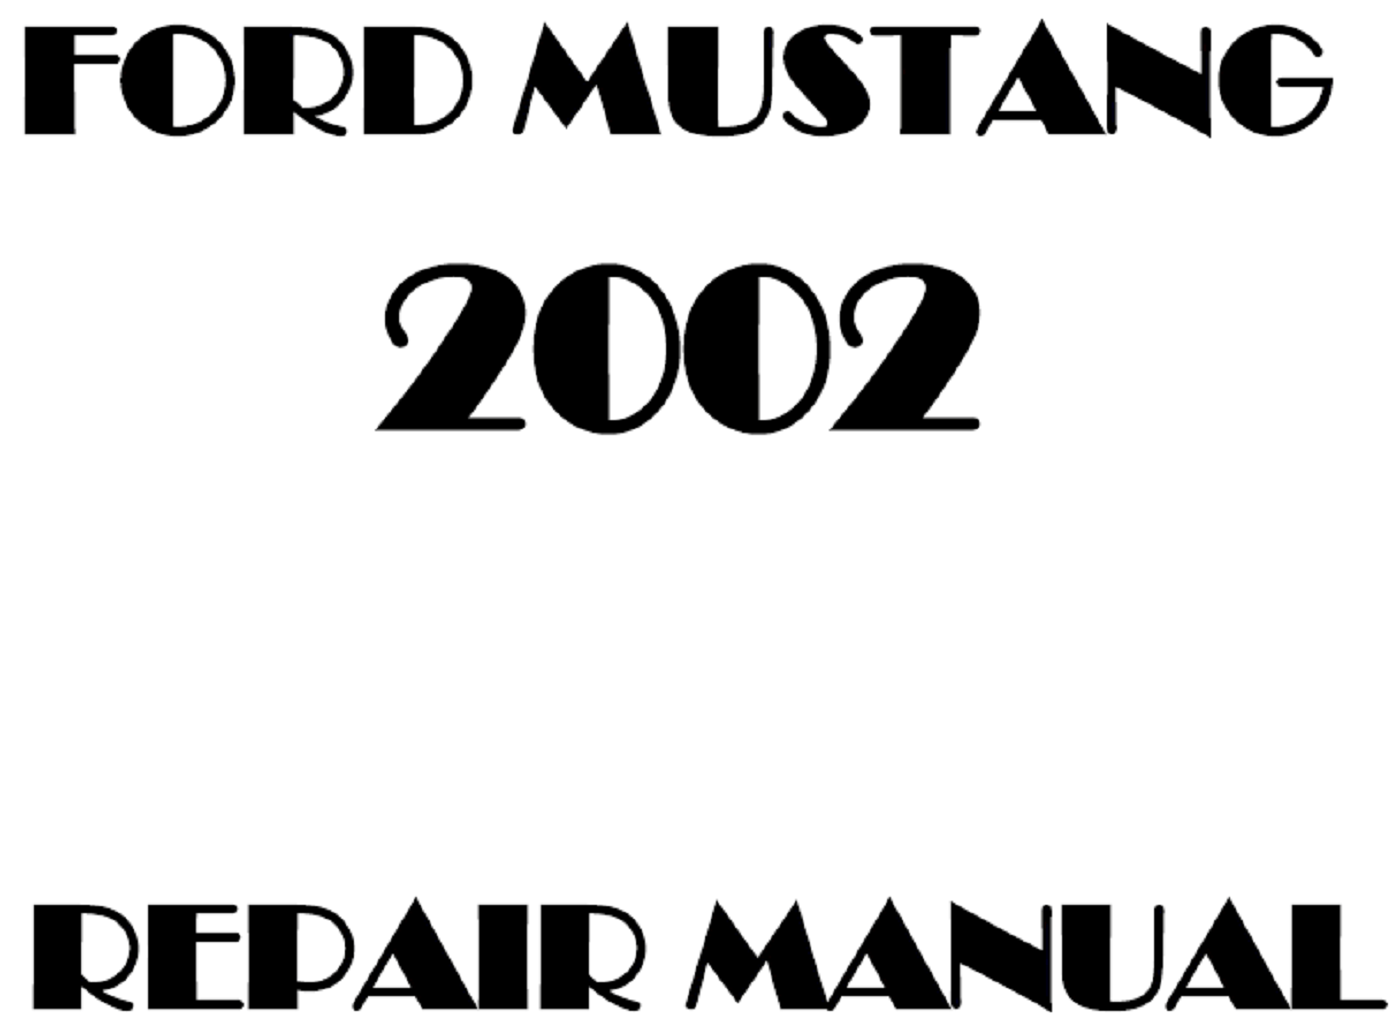 2002 Ford Mustang repair manual